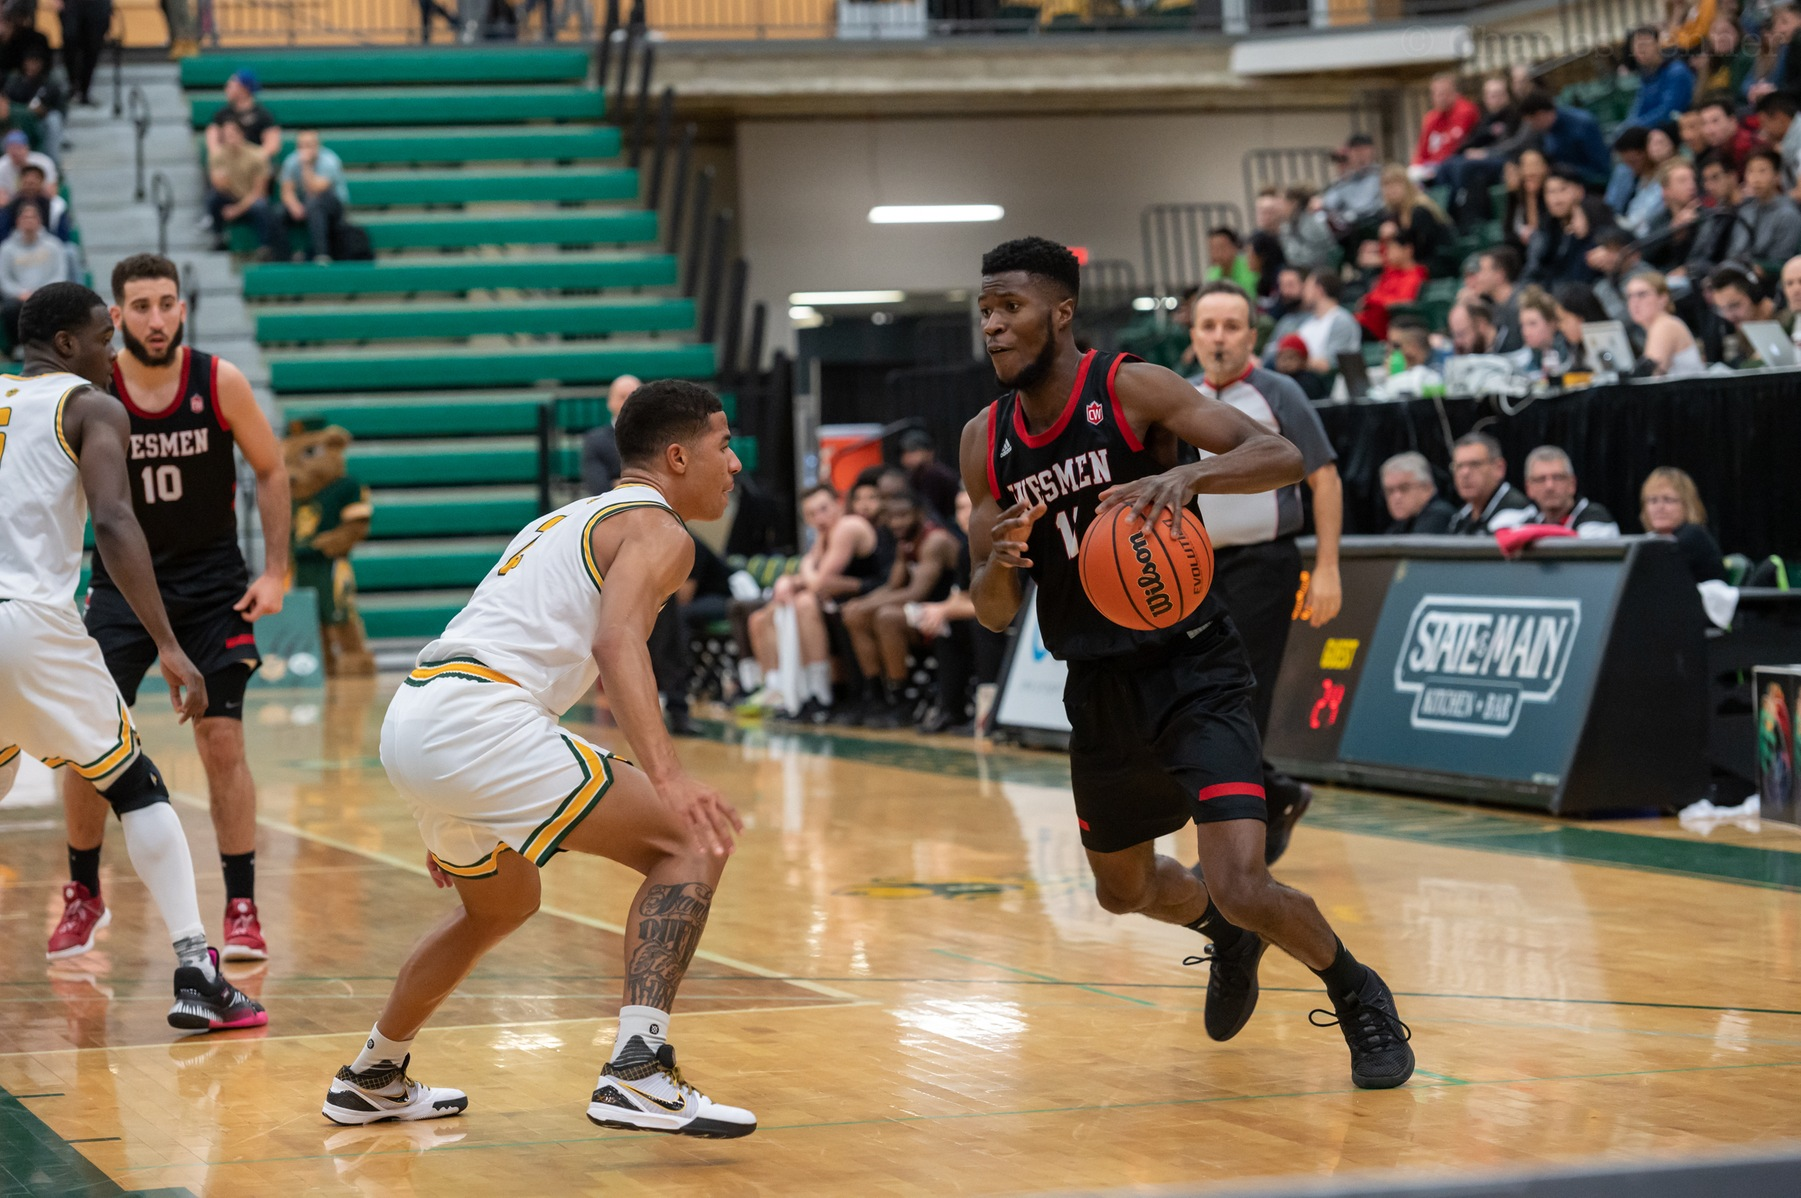 Will Sesay looks to attack the basket during Wesmen men's basketball action at Alberta, Friday, Nov. 8, 2019. (Photo: CombatCaptured/Alberta Athletics)